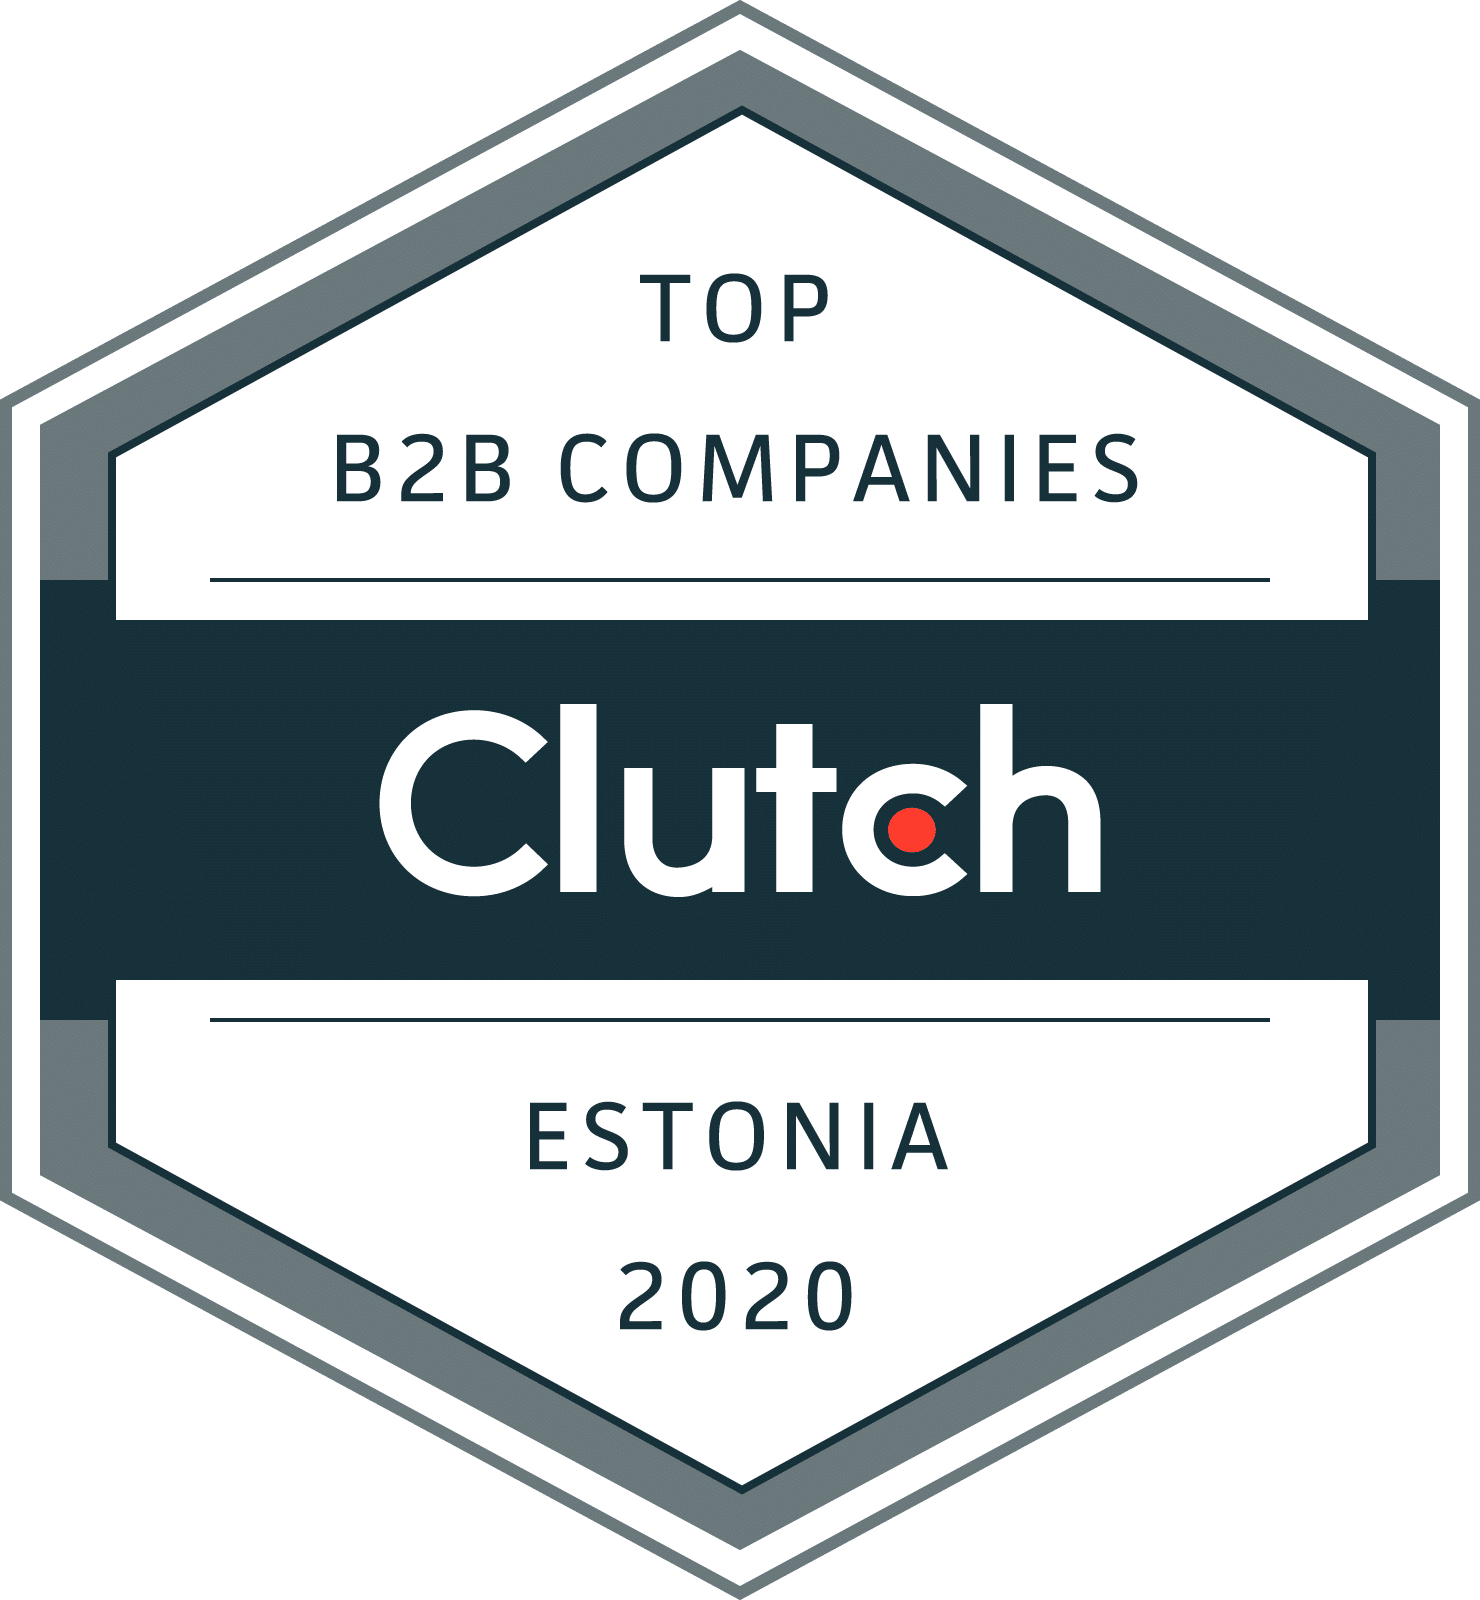 Top B2B Companies Estonia 2020